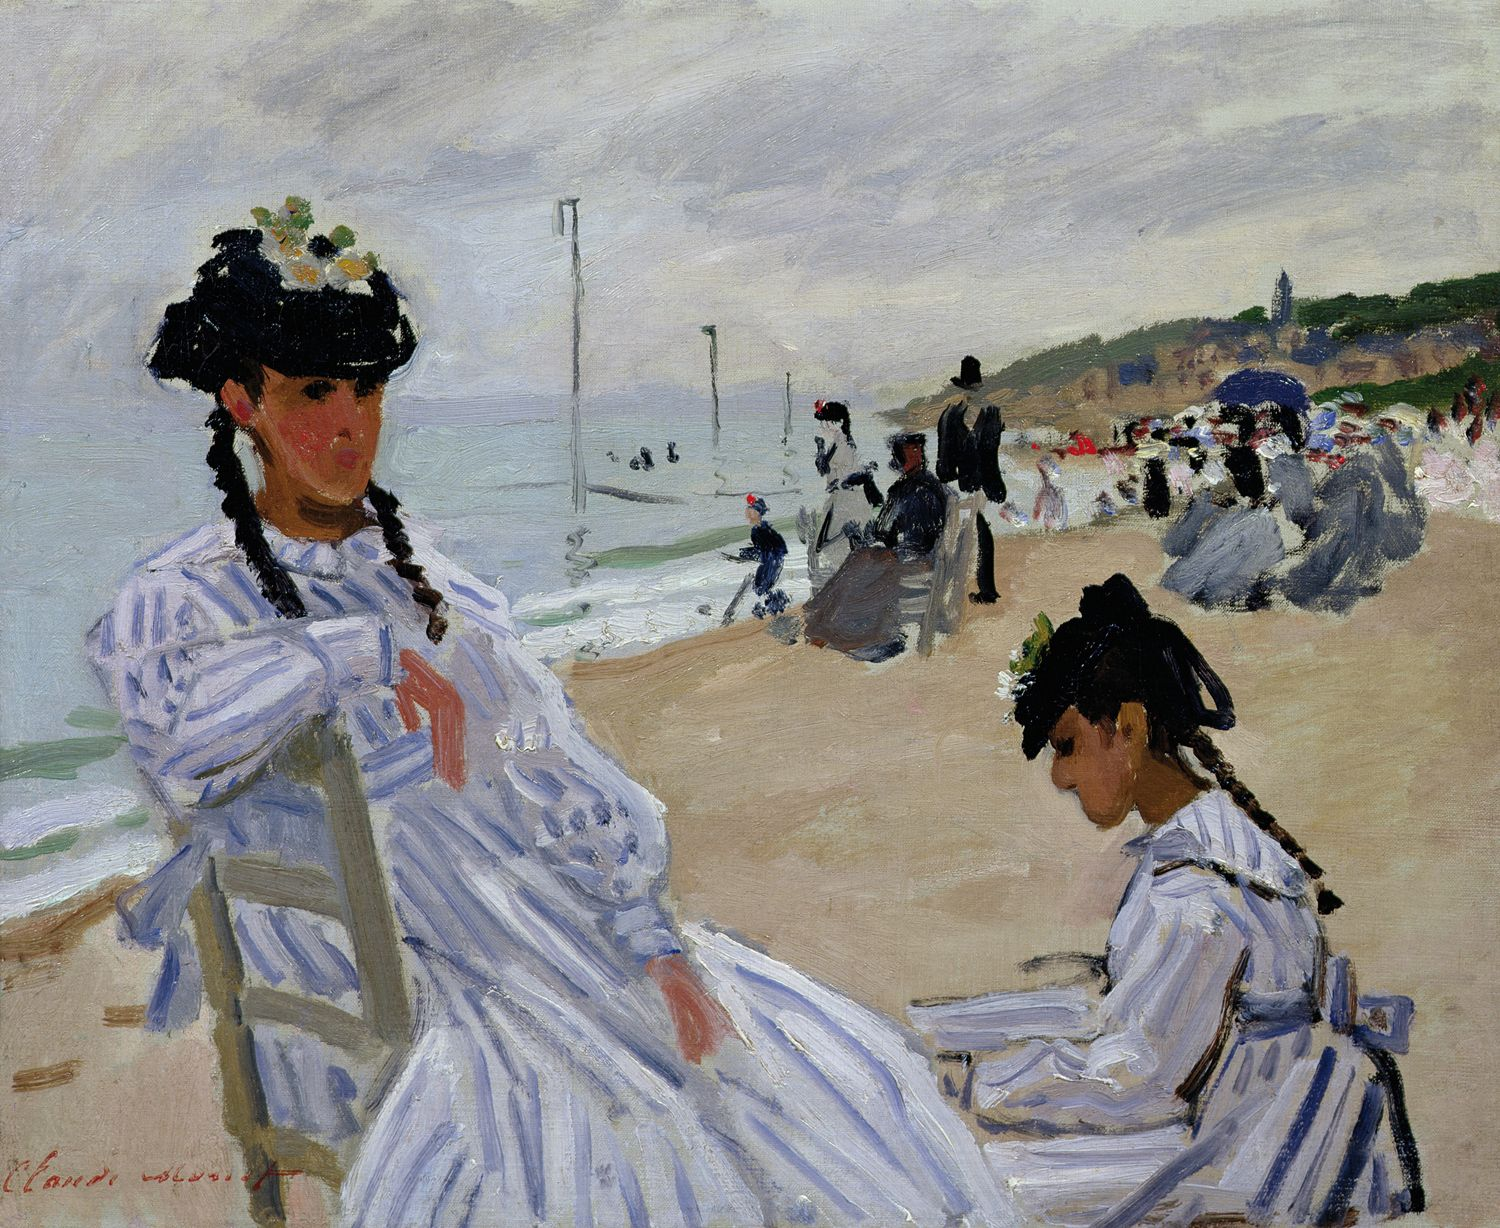 Claude Monet/Am Strand von Trouville, 1870/Öl auf Leinwand/ Museé Marmottan Monet, Paris/© Musée Marmottan Monet, Paris/ Bridgeman Images